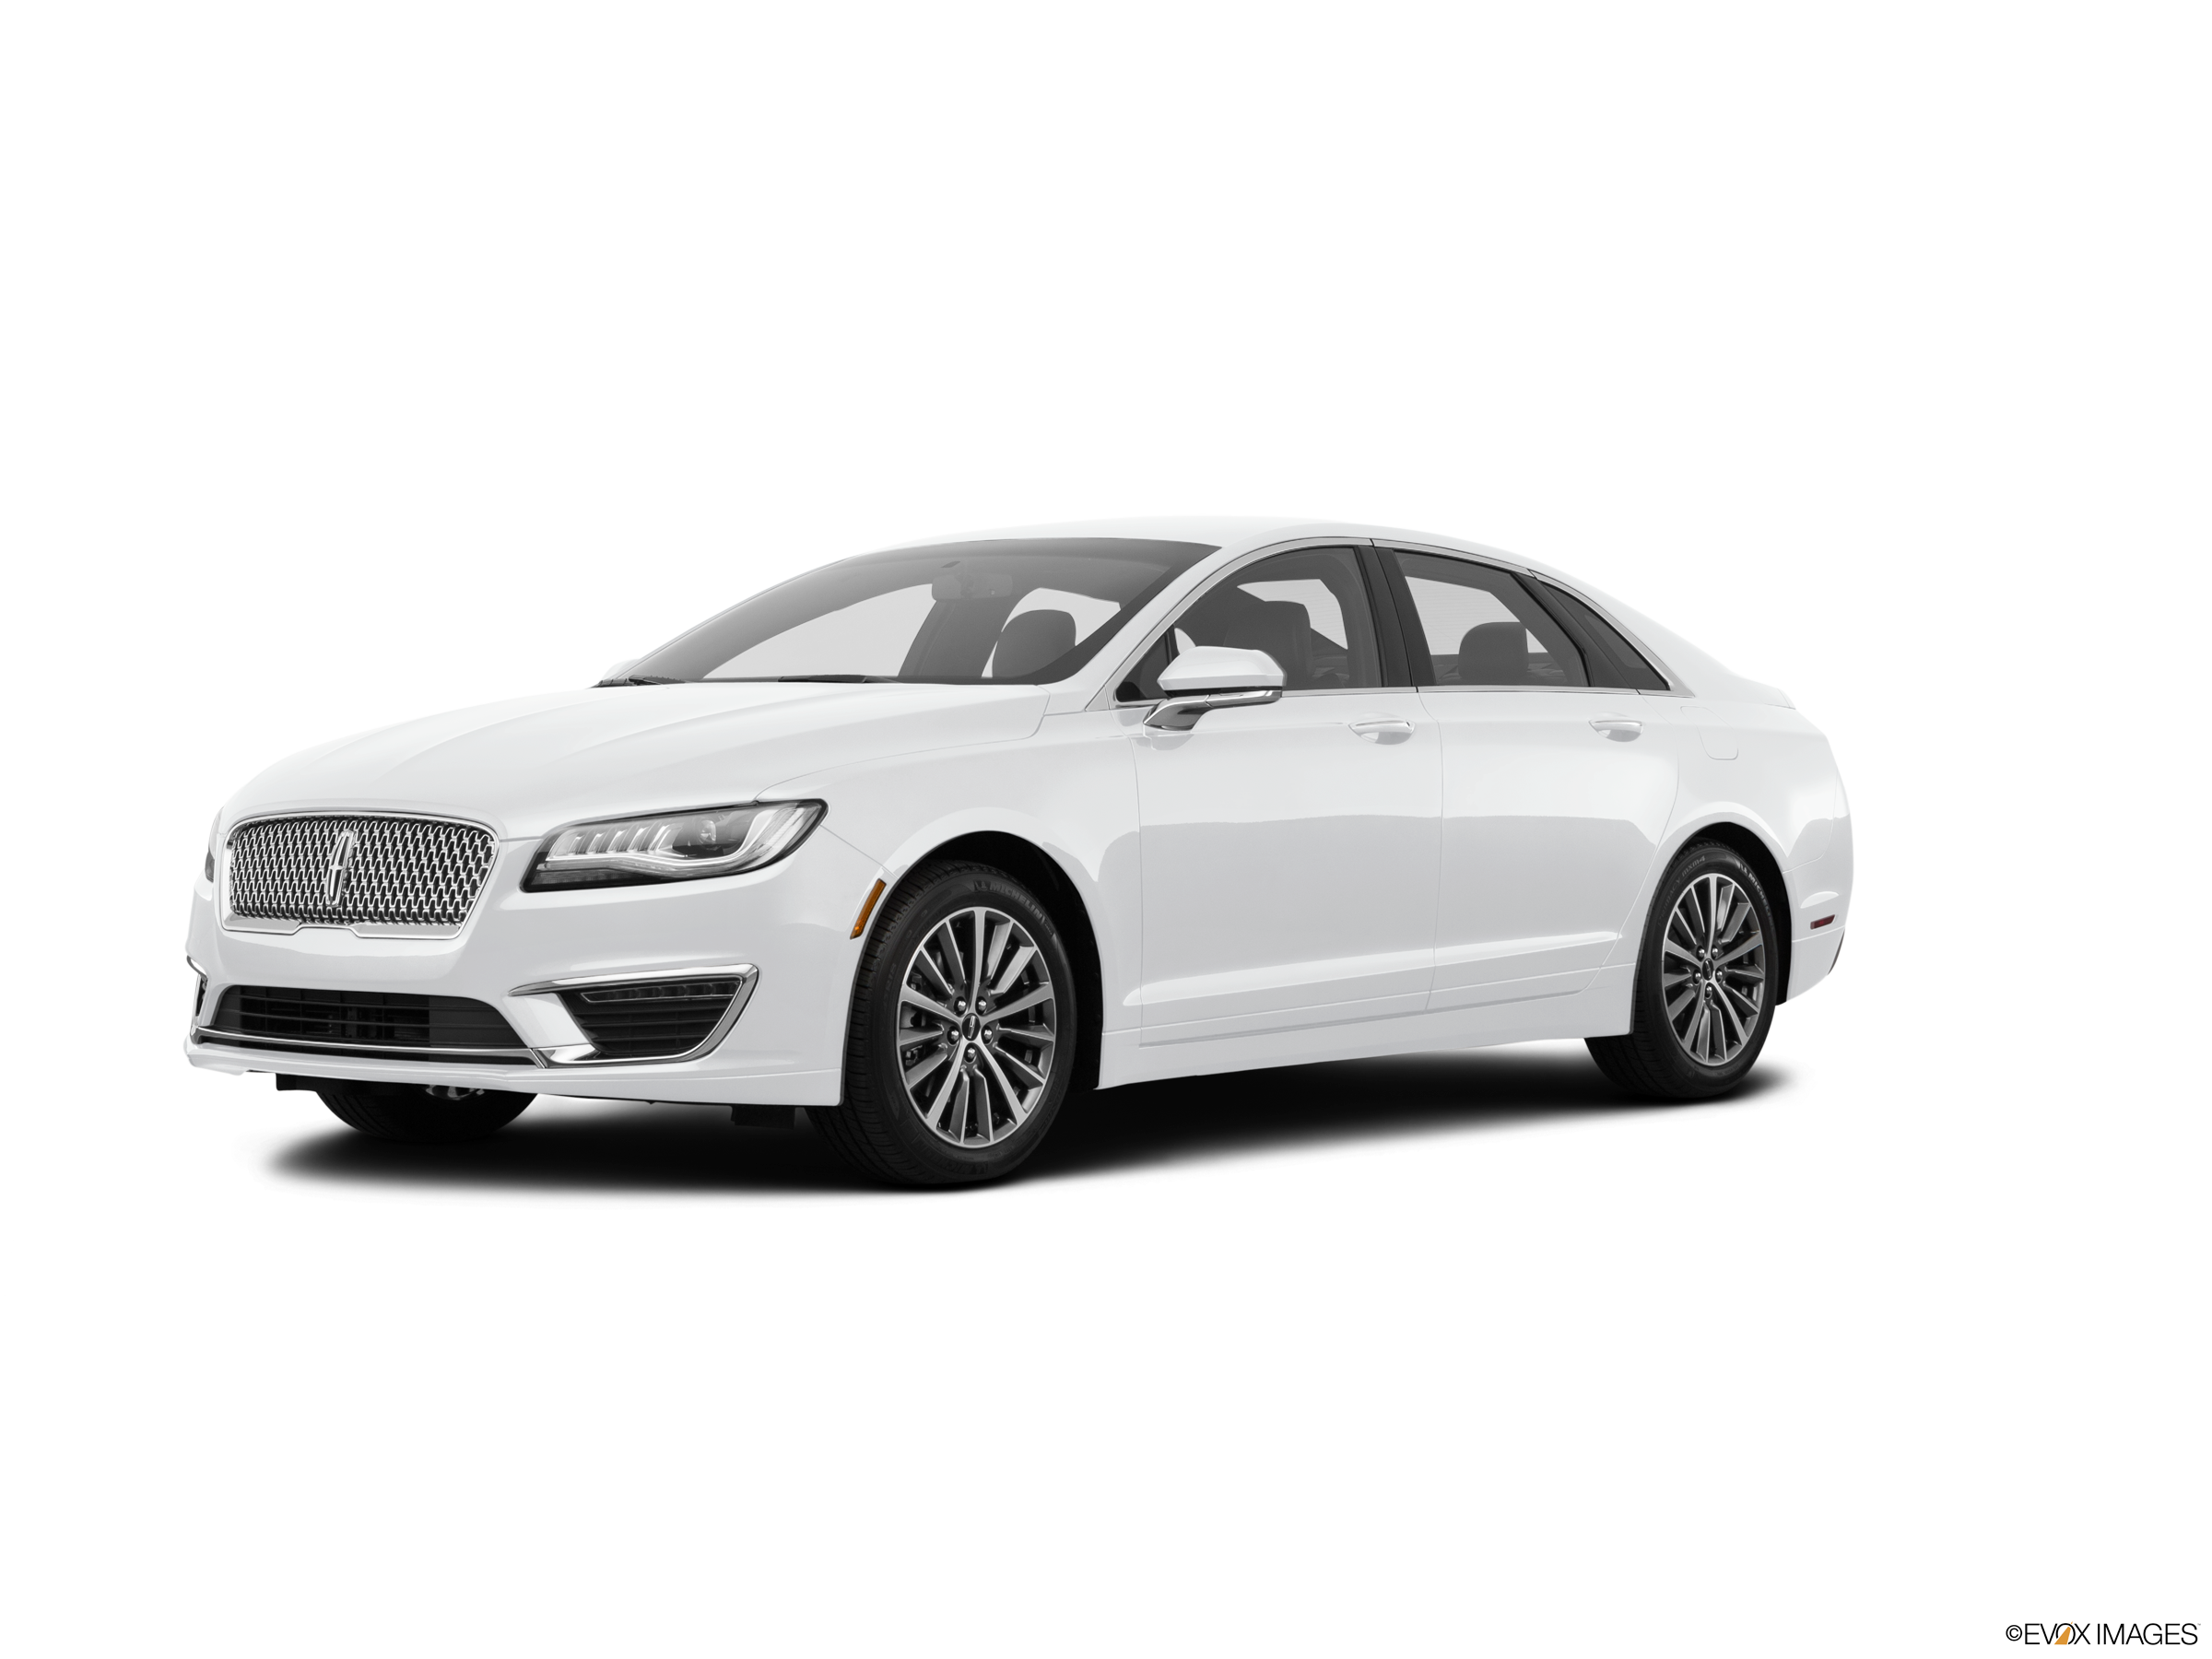 Most Fuel Efficient Luxury Vehicles of 2018 - 2018 Lincoln MKZ